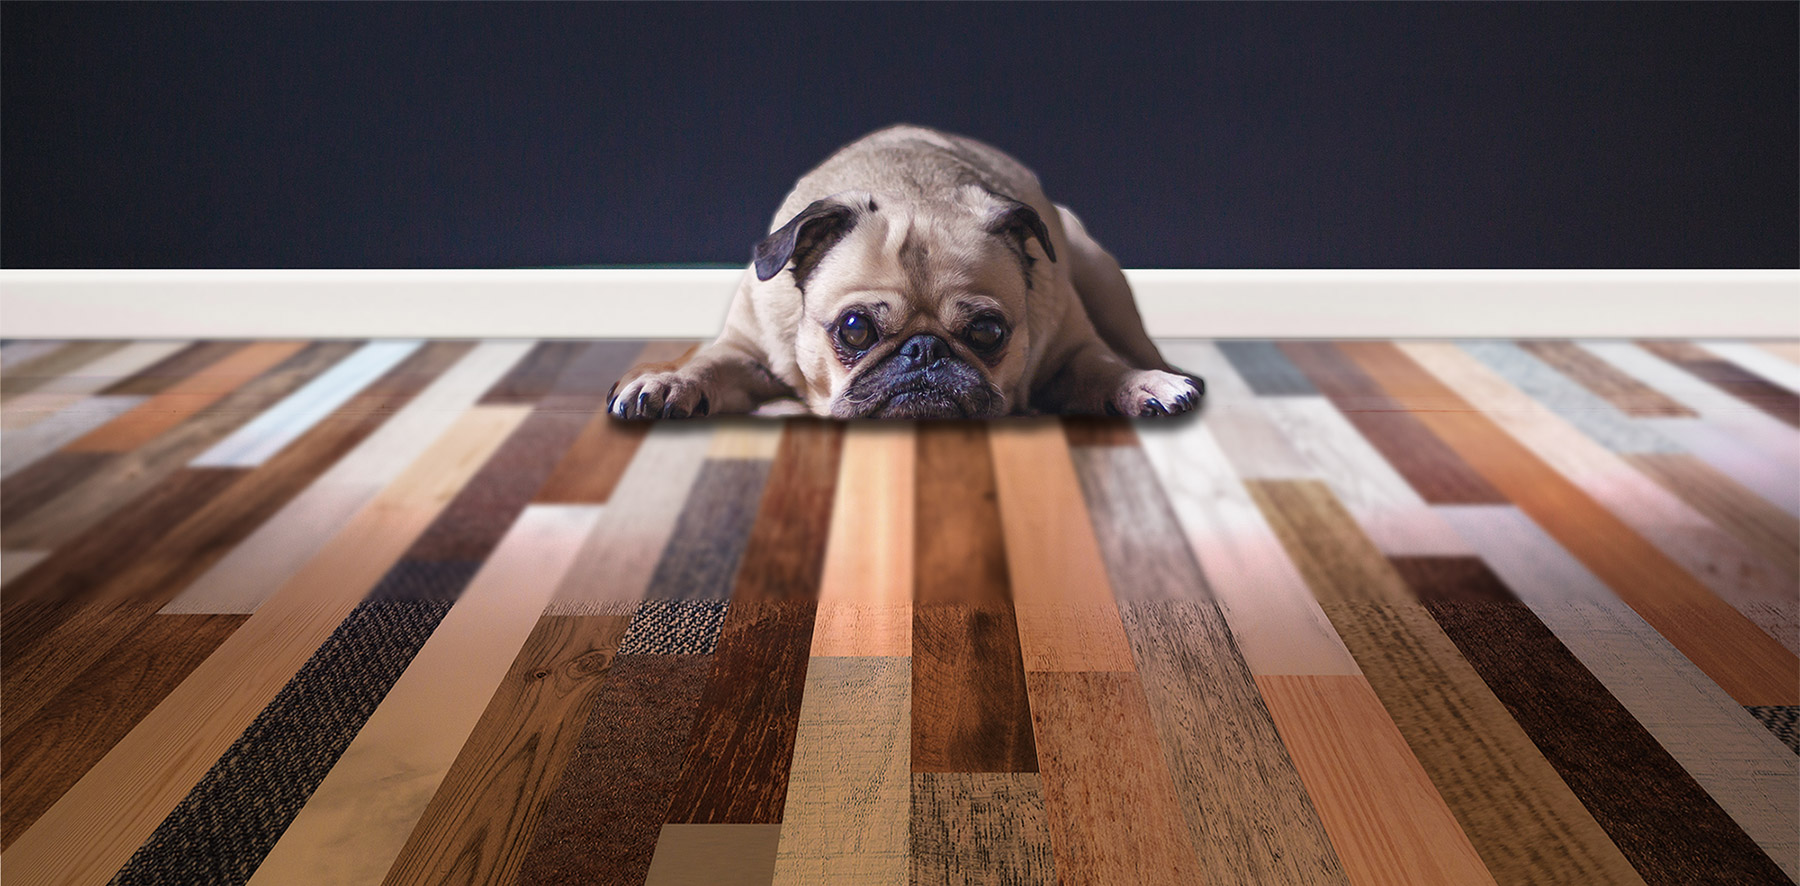 Durable Wood Flooring Flooring Products Luxury Vinyl Wpc Spc Flooring